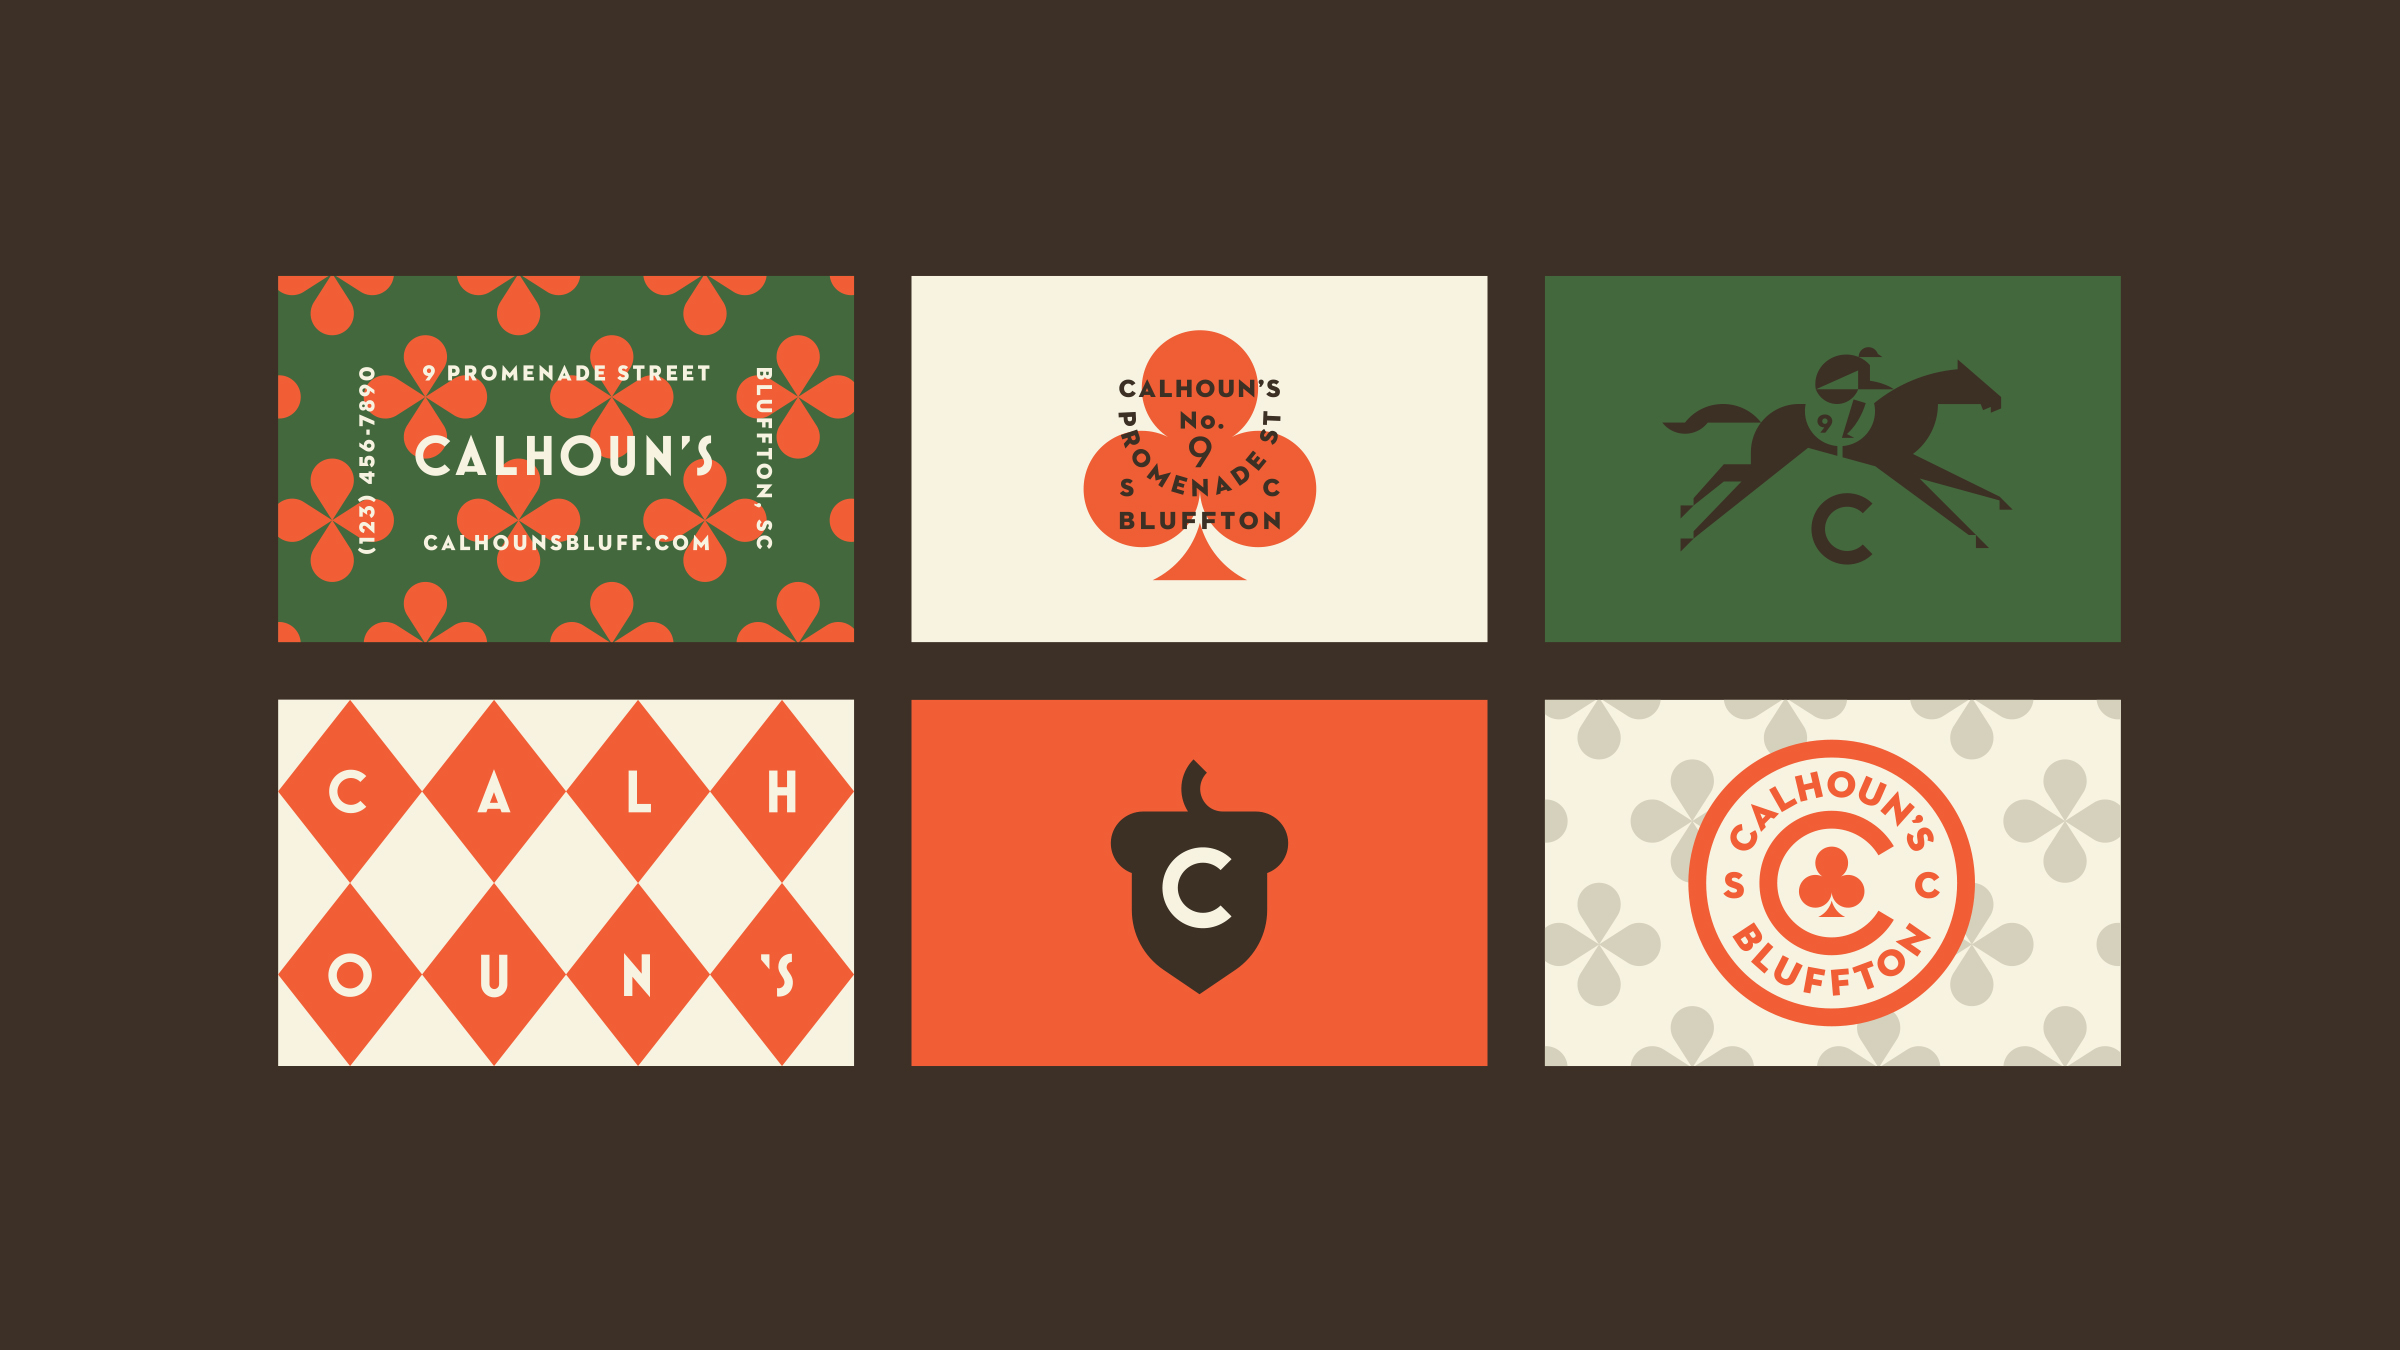 Calhoun's Bluffton Business Card Designs